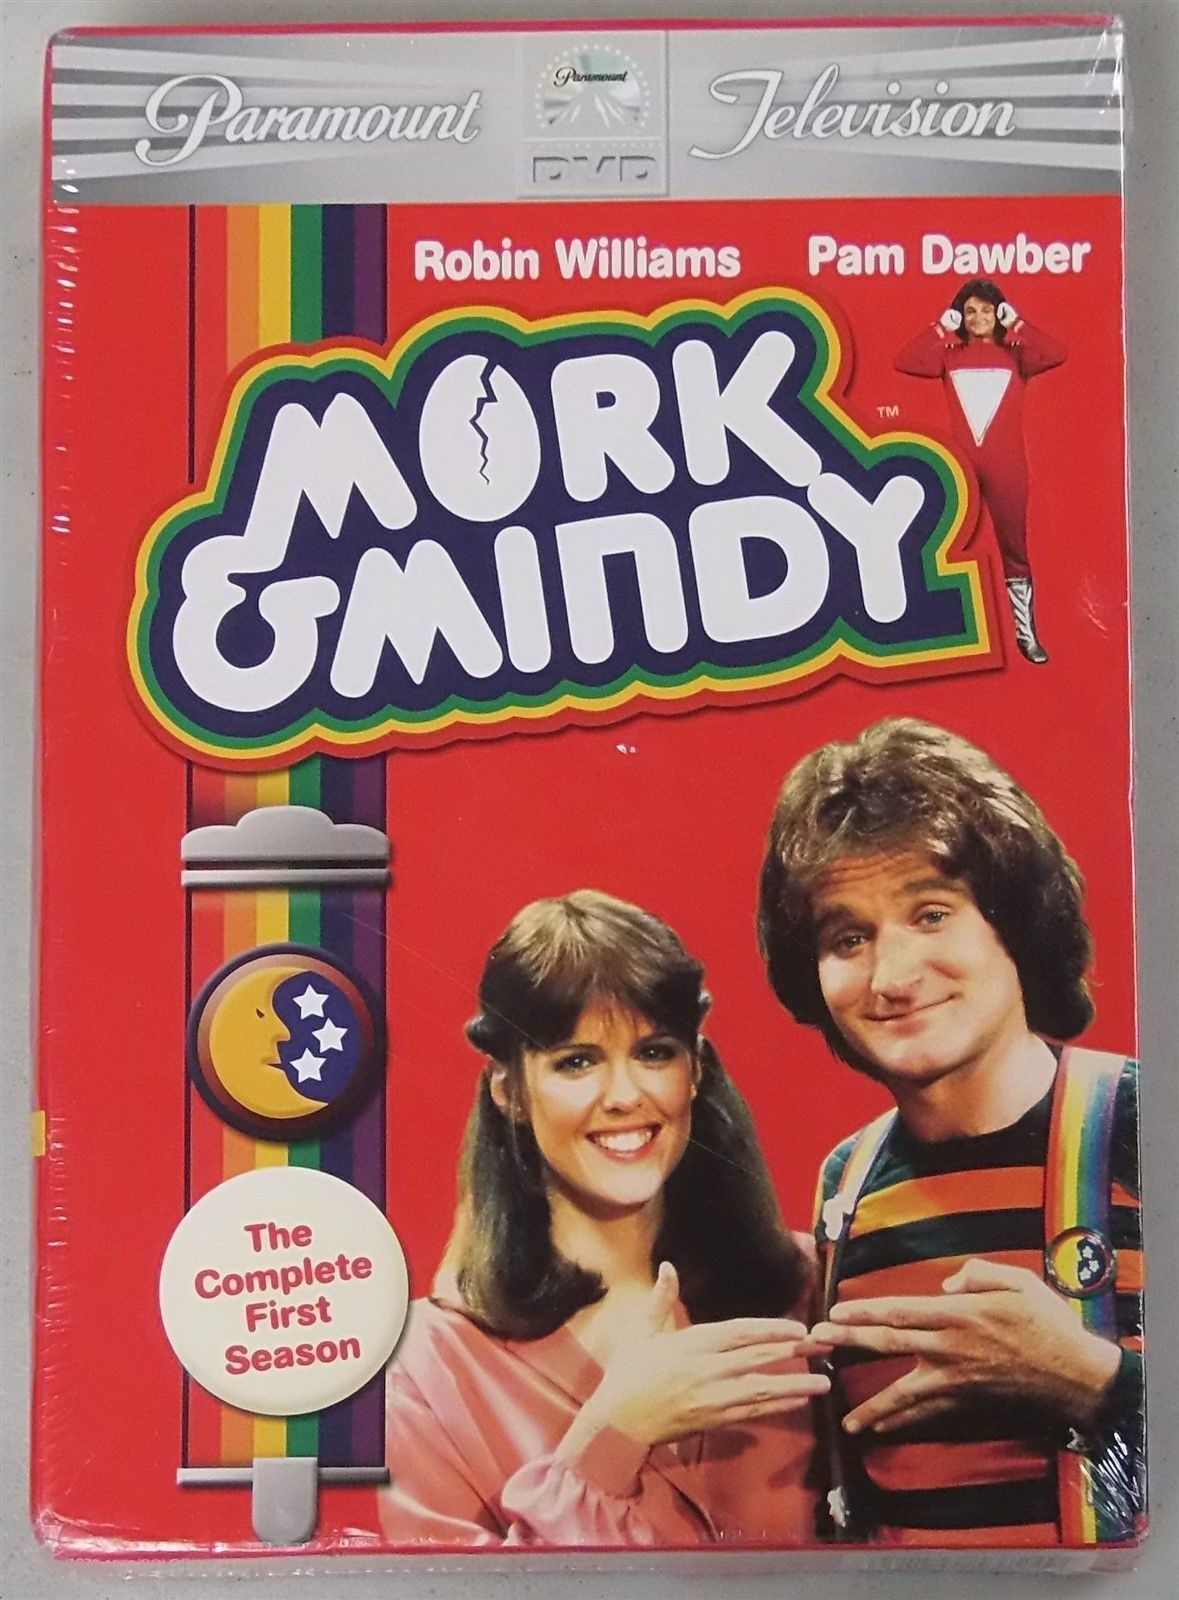 Mork & Mindy - The Complete First Season (DVD Box Set) New Classic TV Series